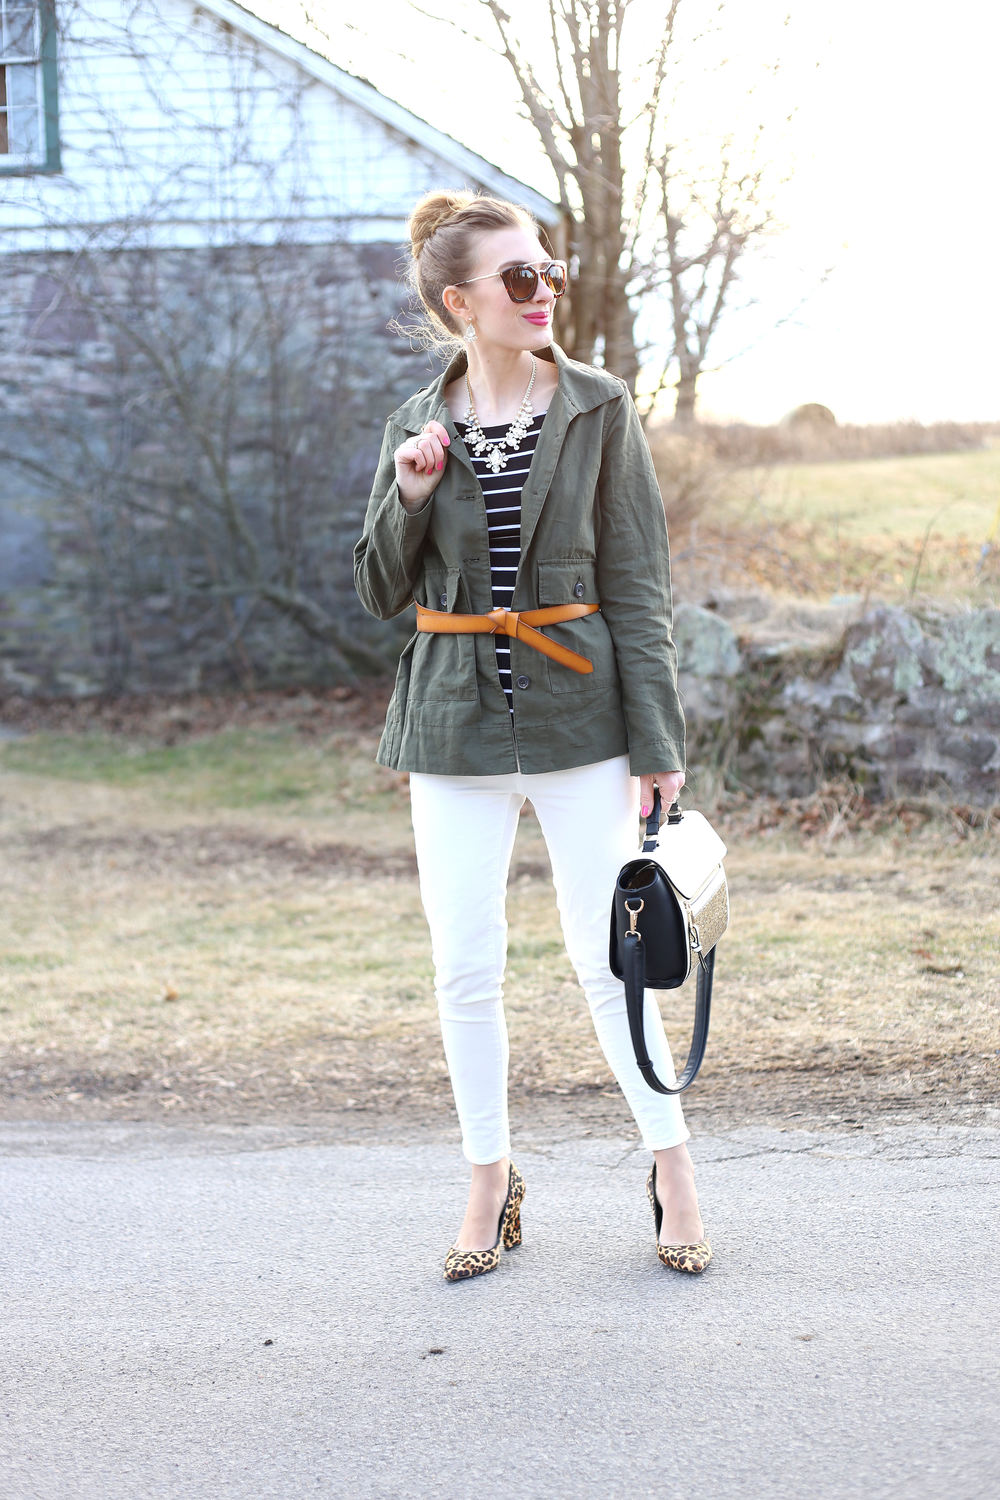 Olive Green & Stripes- Enchanting Elegance